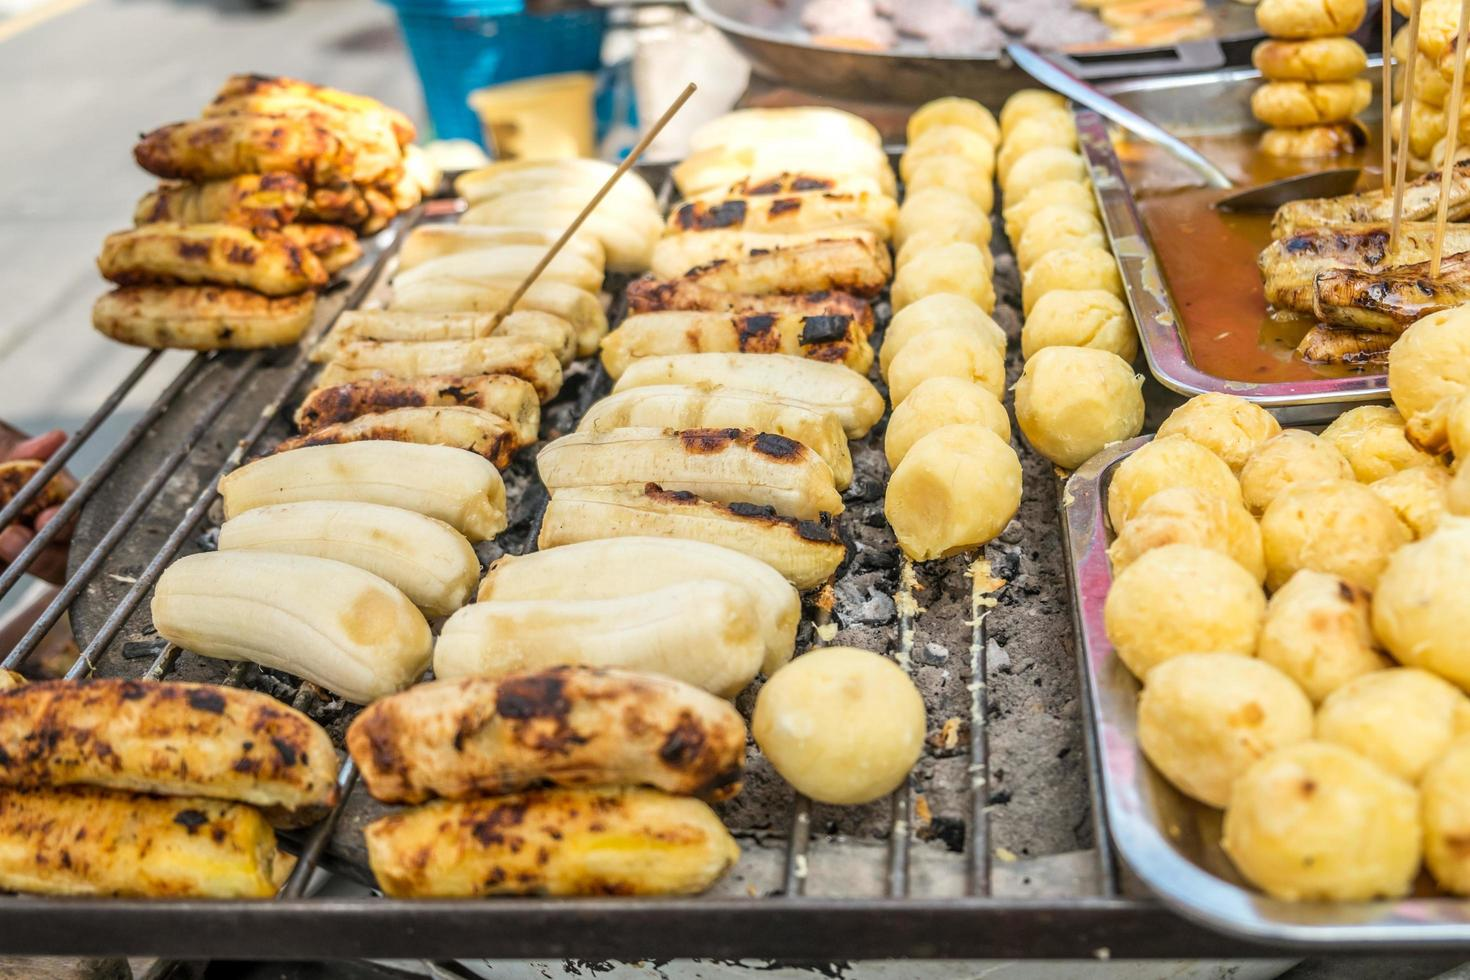 Grilled banana and sweet potato for sale at a local market photo